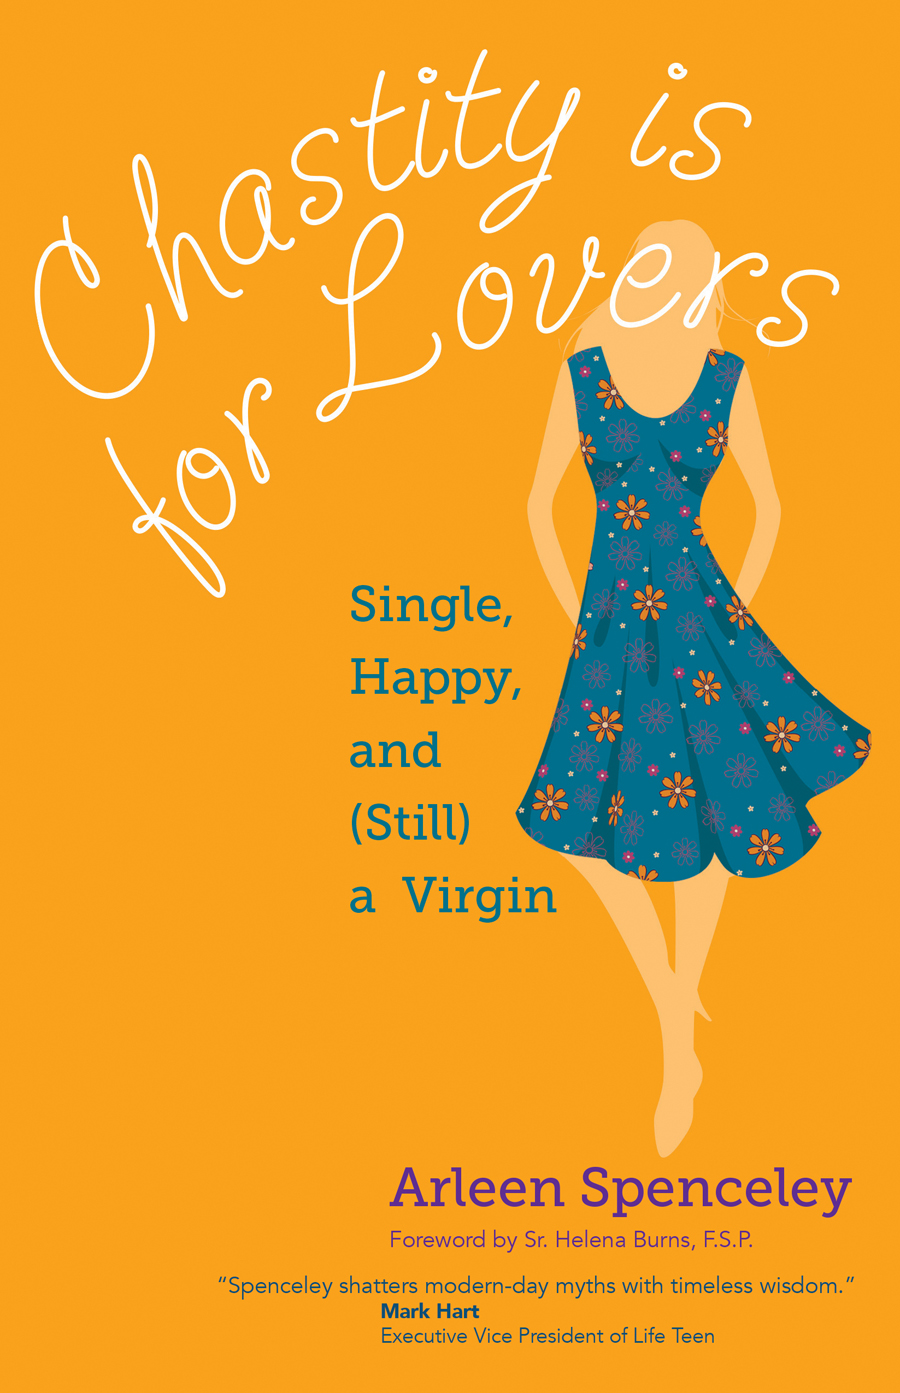 pennock christian single women But christian singles do have a life journey that does not include the experiences my own struggles as a single woman christian research institute.